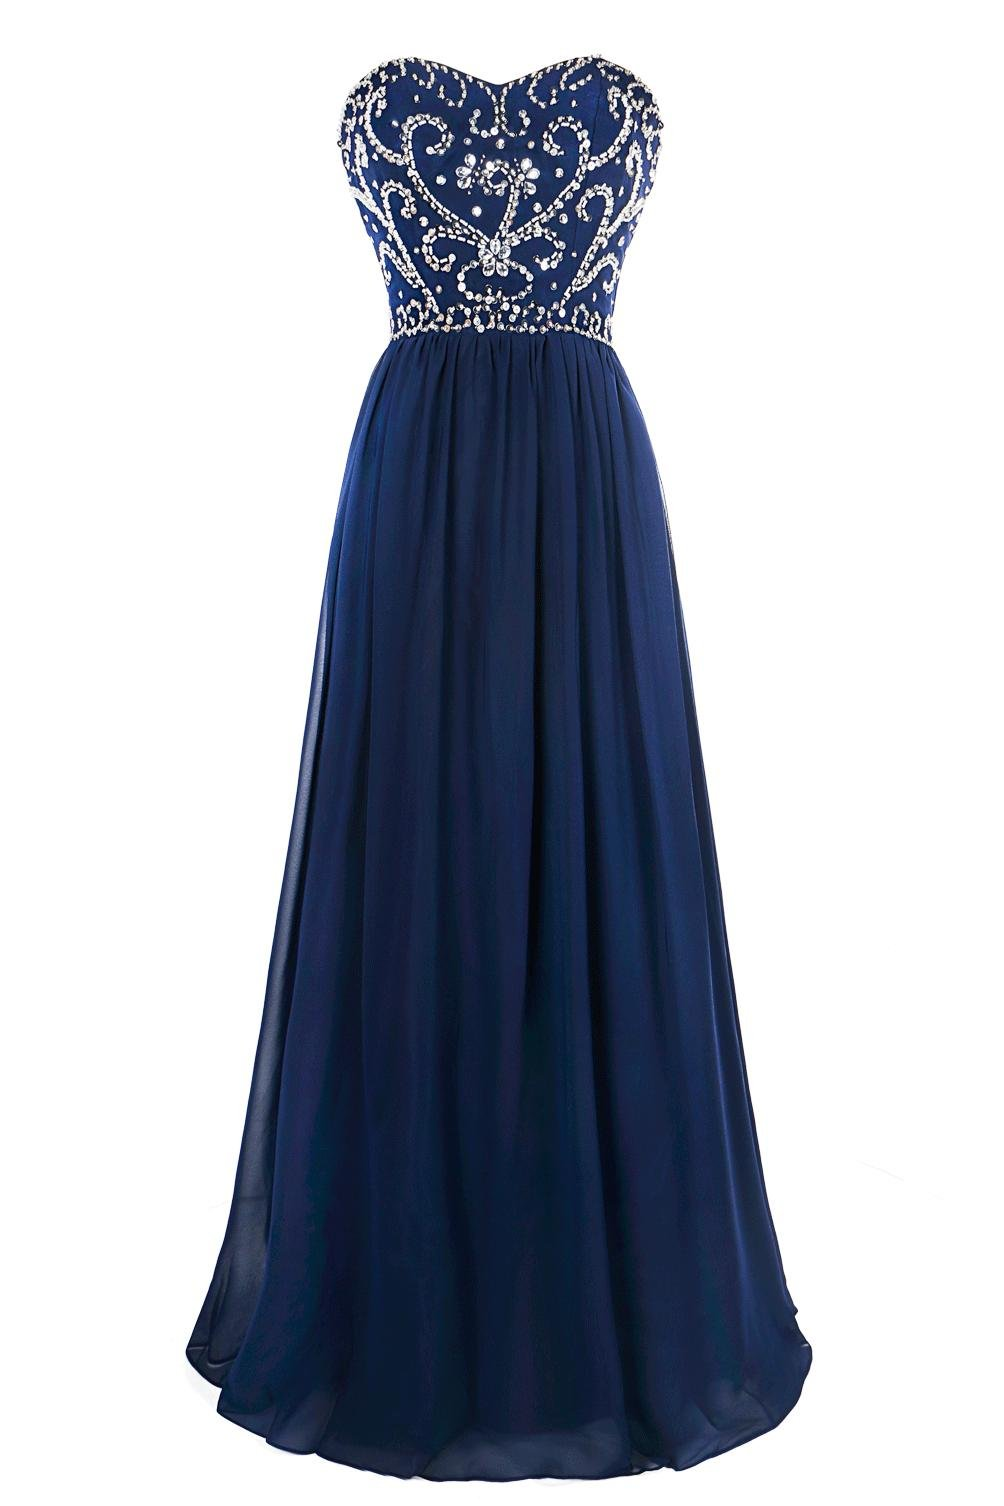 Available at Amazon: MsJune Prom Dresses A Line Sweetheart Lace Up Back Floor Length Evening Dress